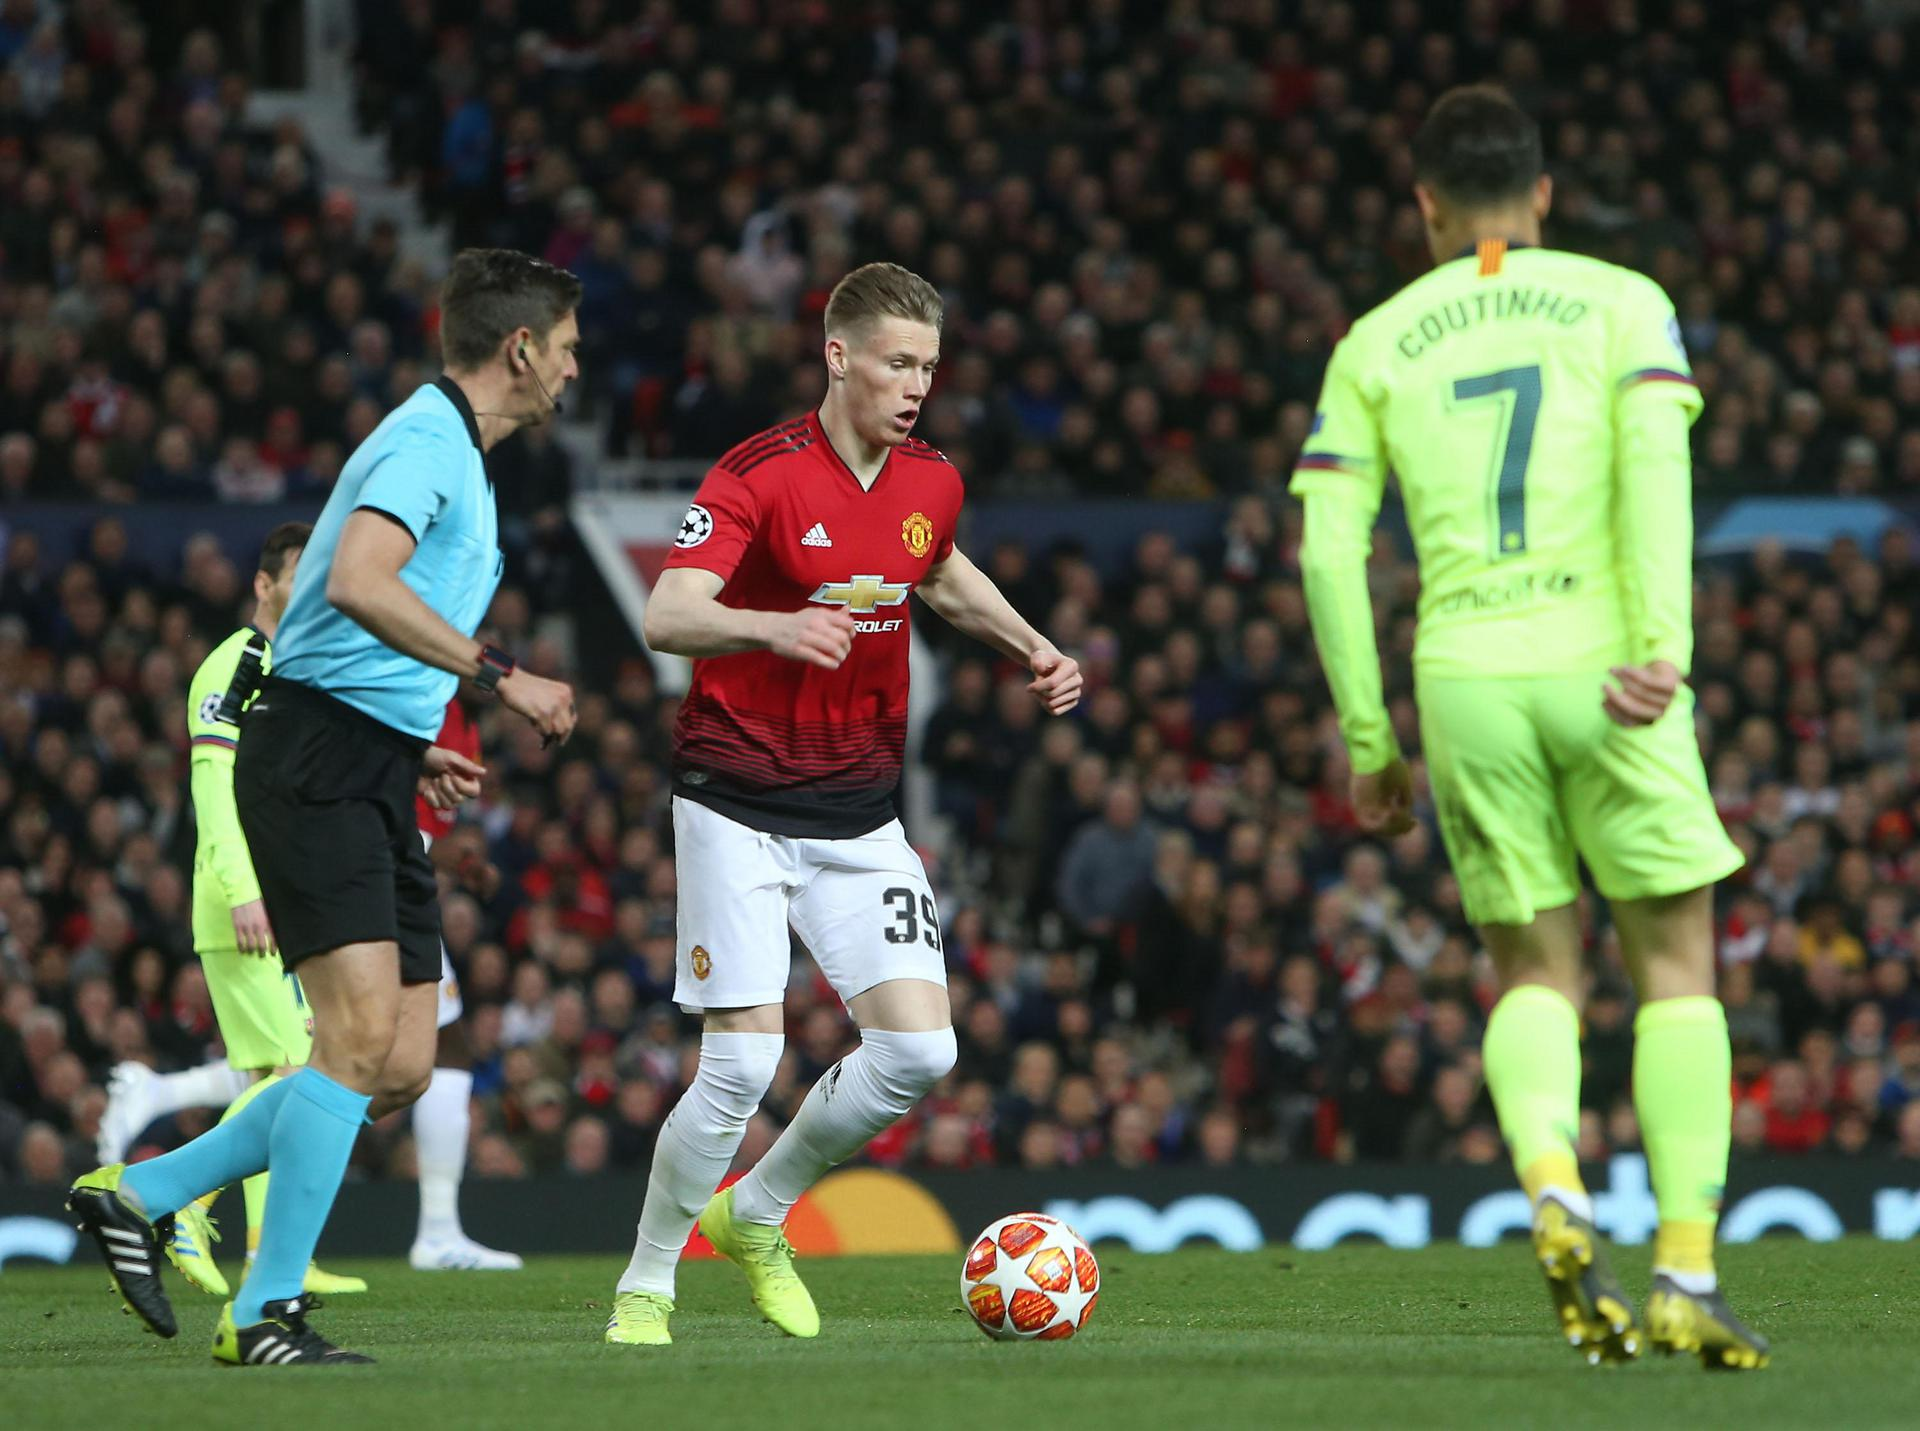 Scott McTominay shows his composure.